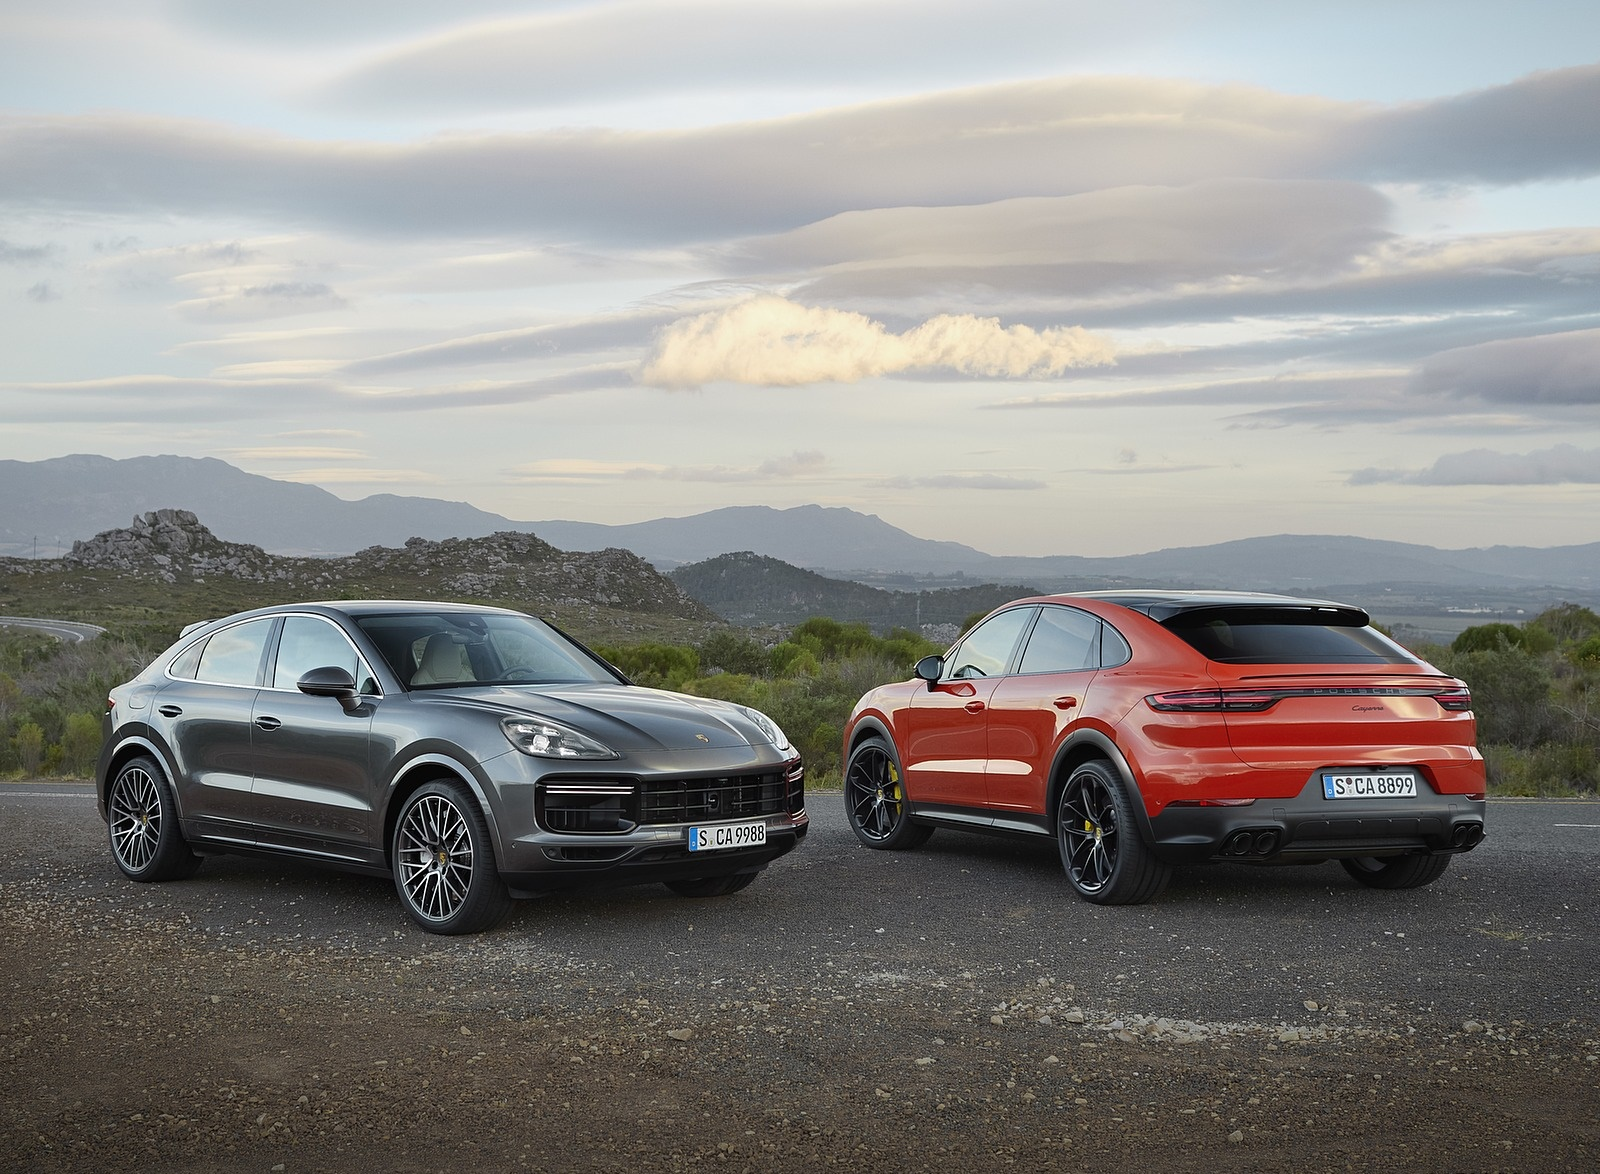 2020 Porsche Cayenne Turbo Coupe and Cayenne Coupe Wallpaper (6)